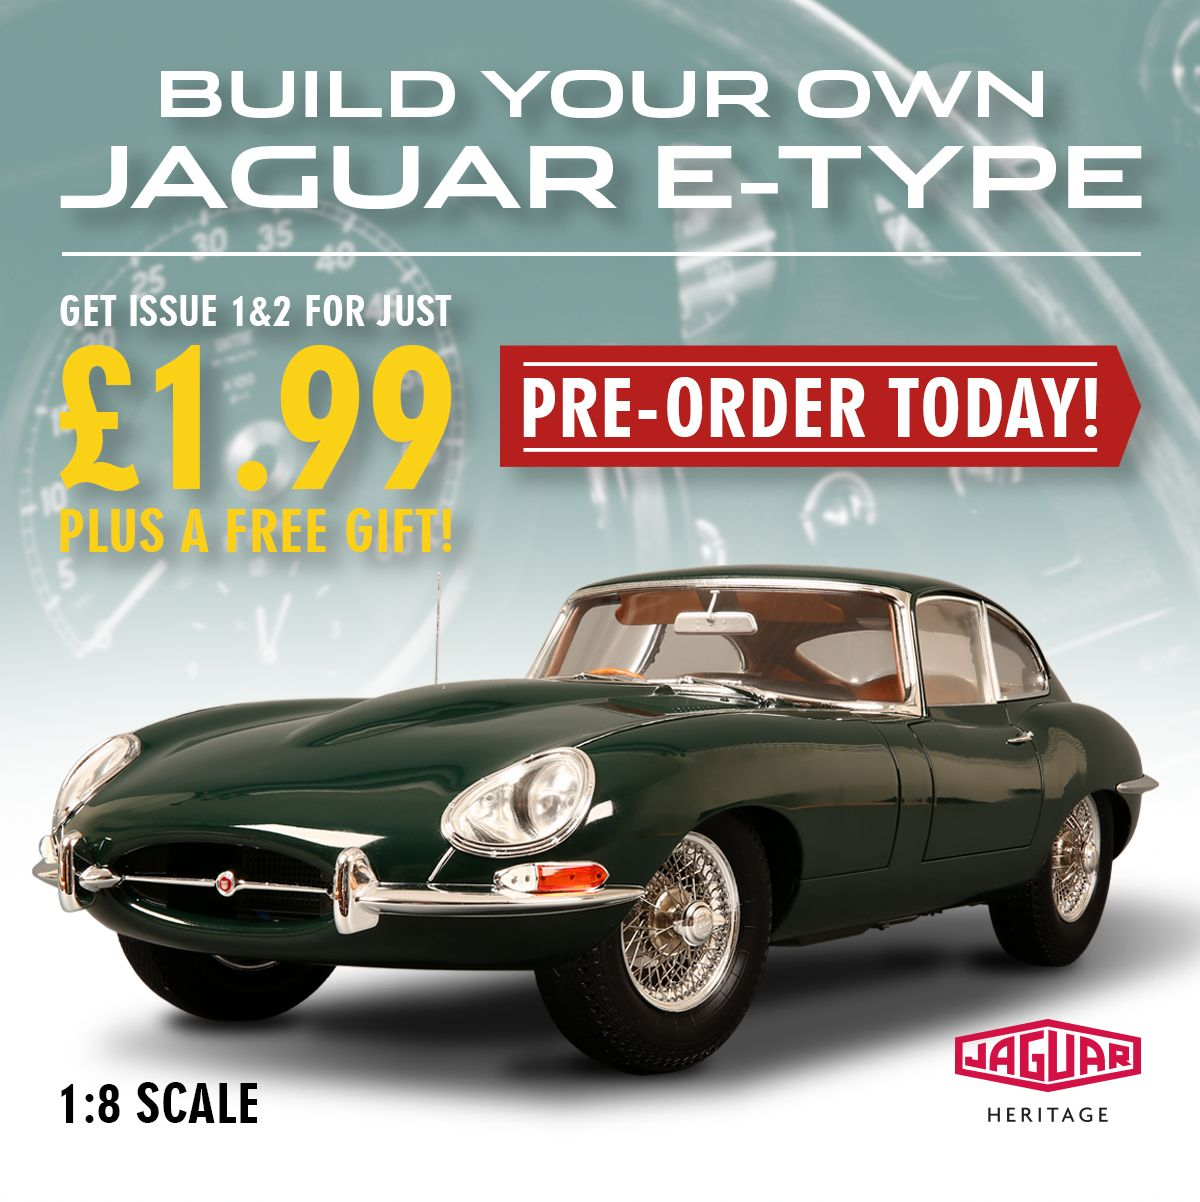 Our New 1:8 Scale Jaguar E Type Is Coming Soon! Pre Order Now To Build A  Stunning Replica Of This 1960s Motoring Icon!